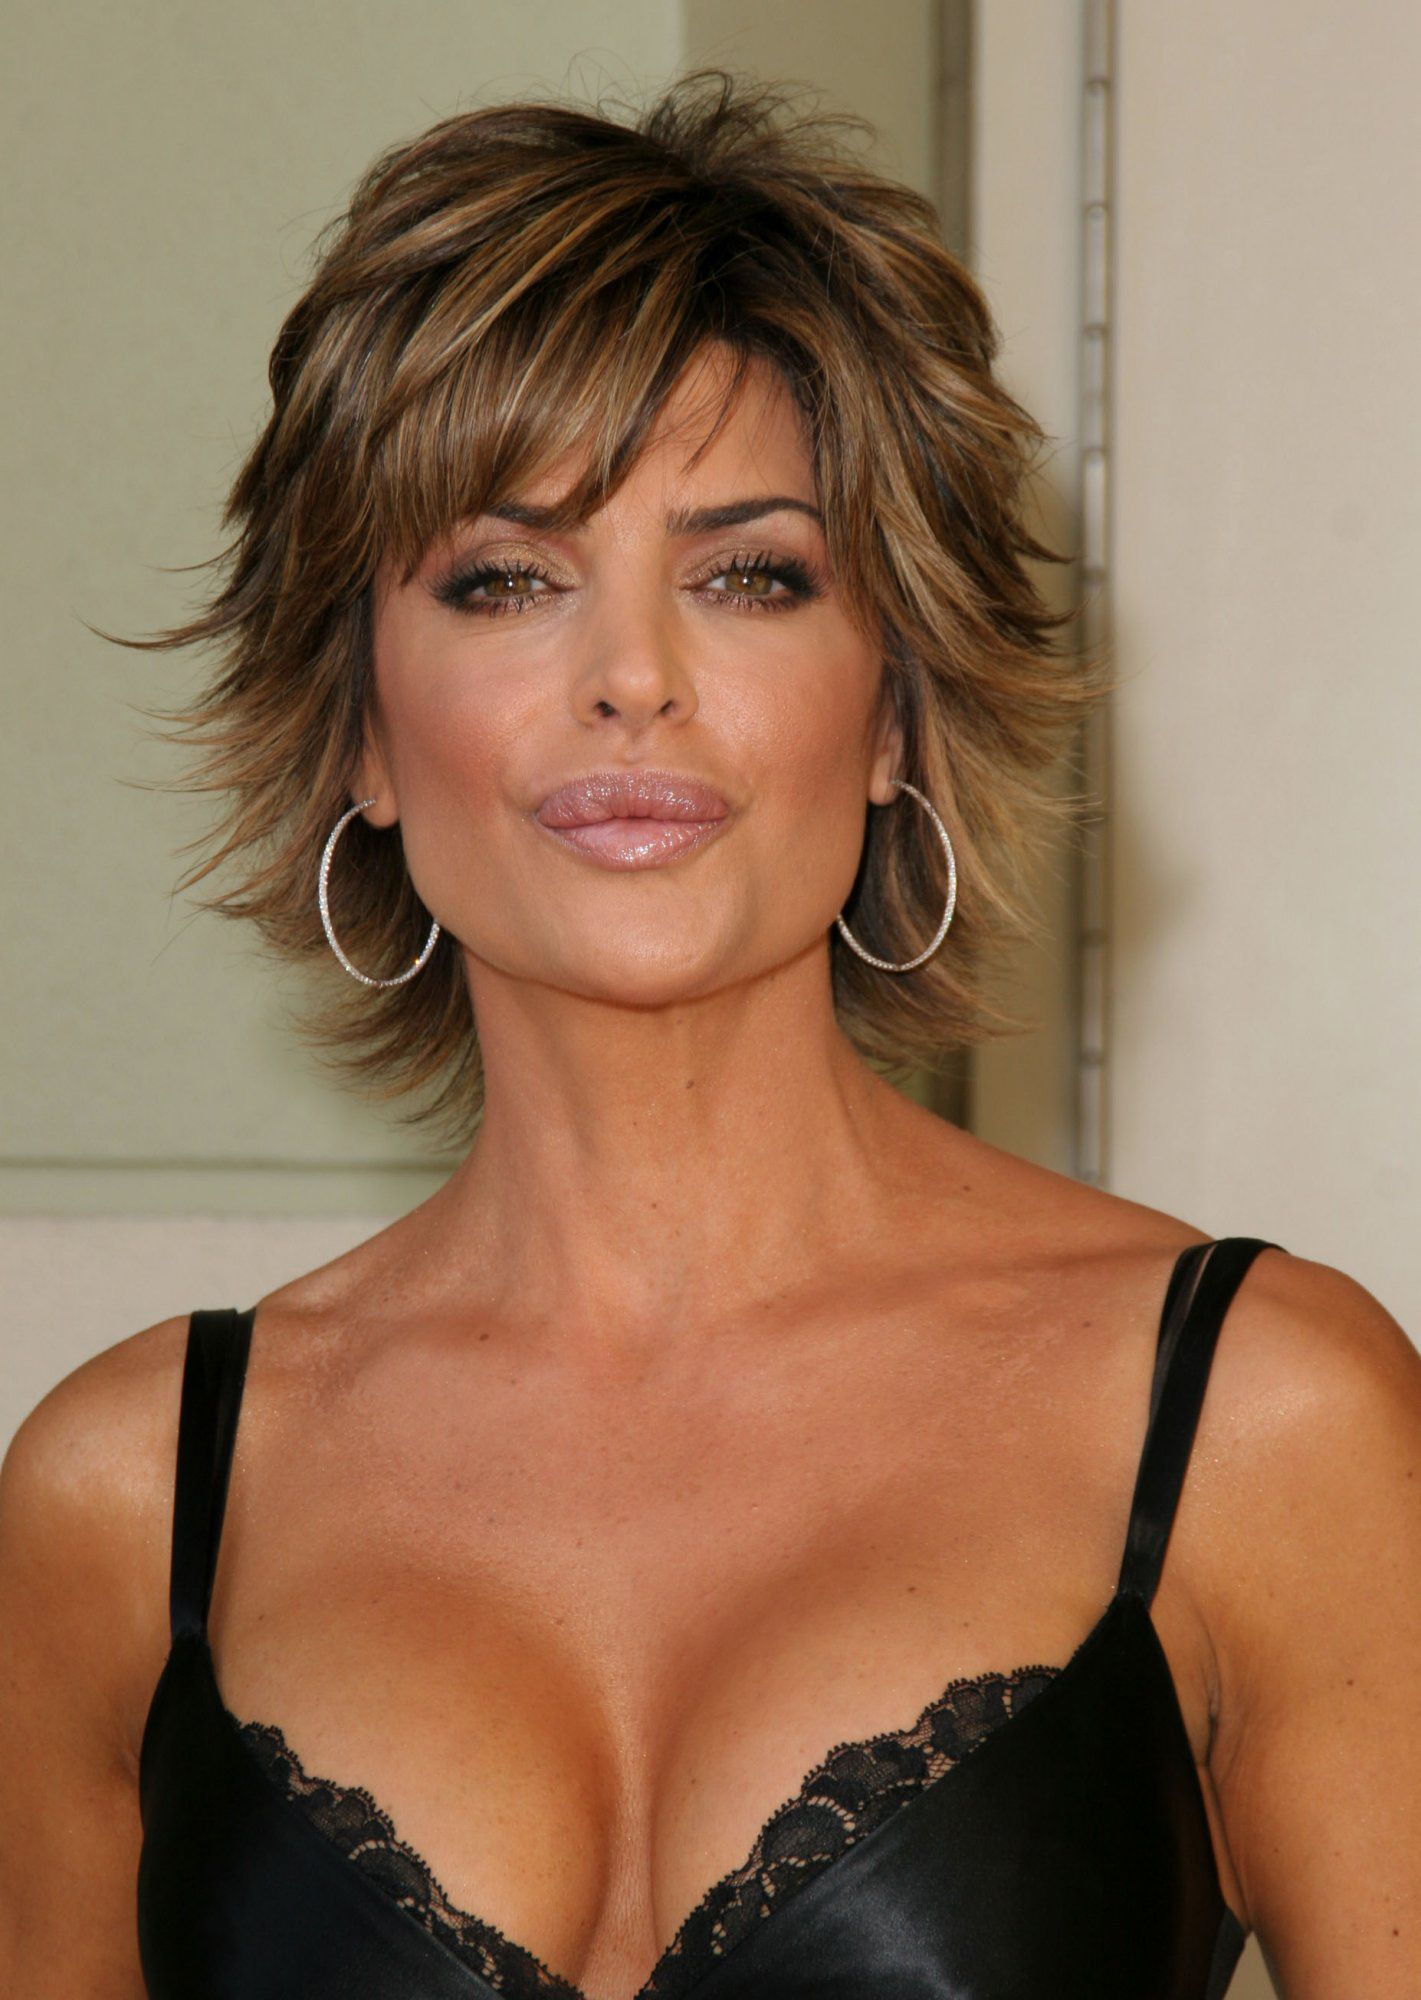 image detail for -lisa rinna unknown event (black dress) cleavage